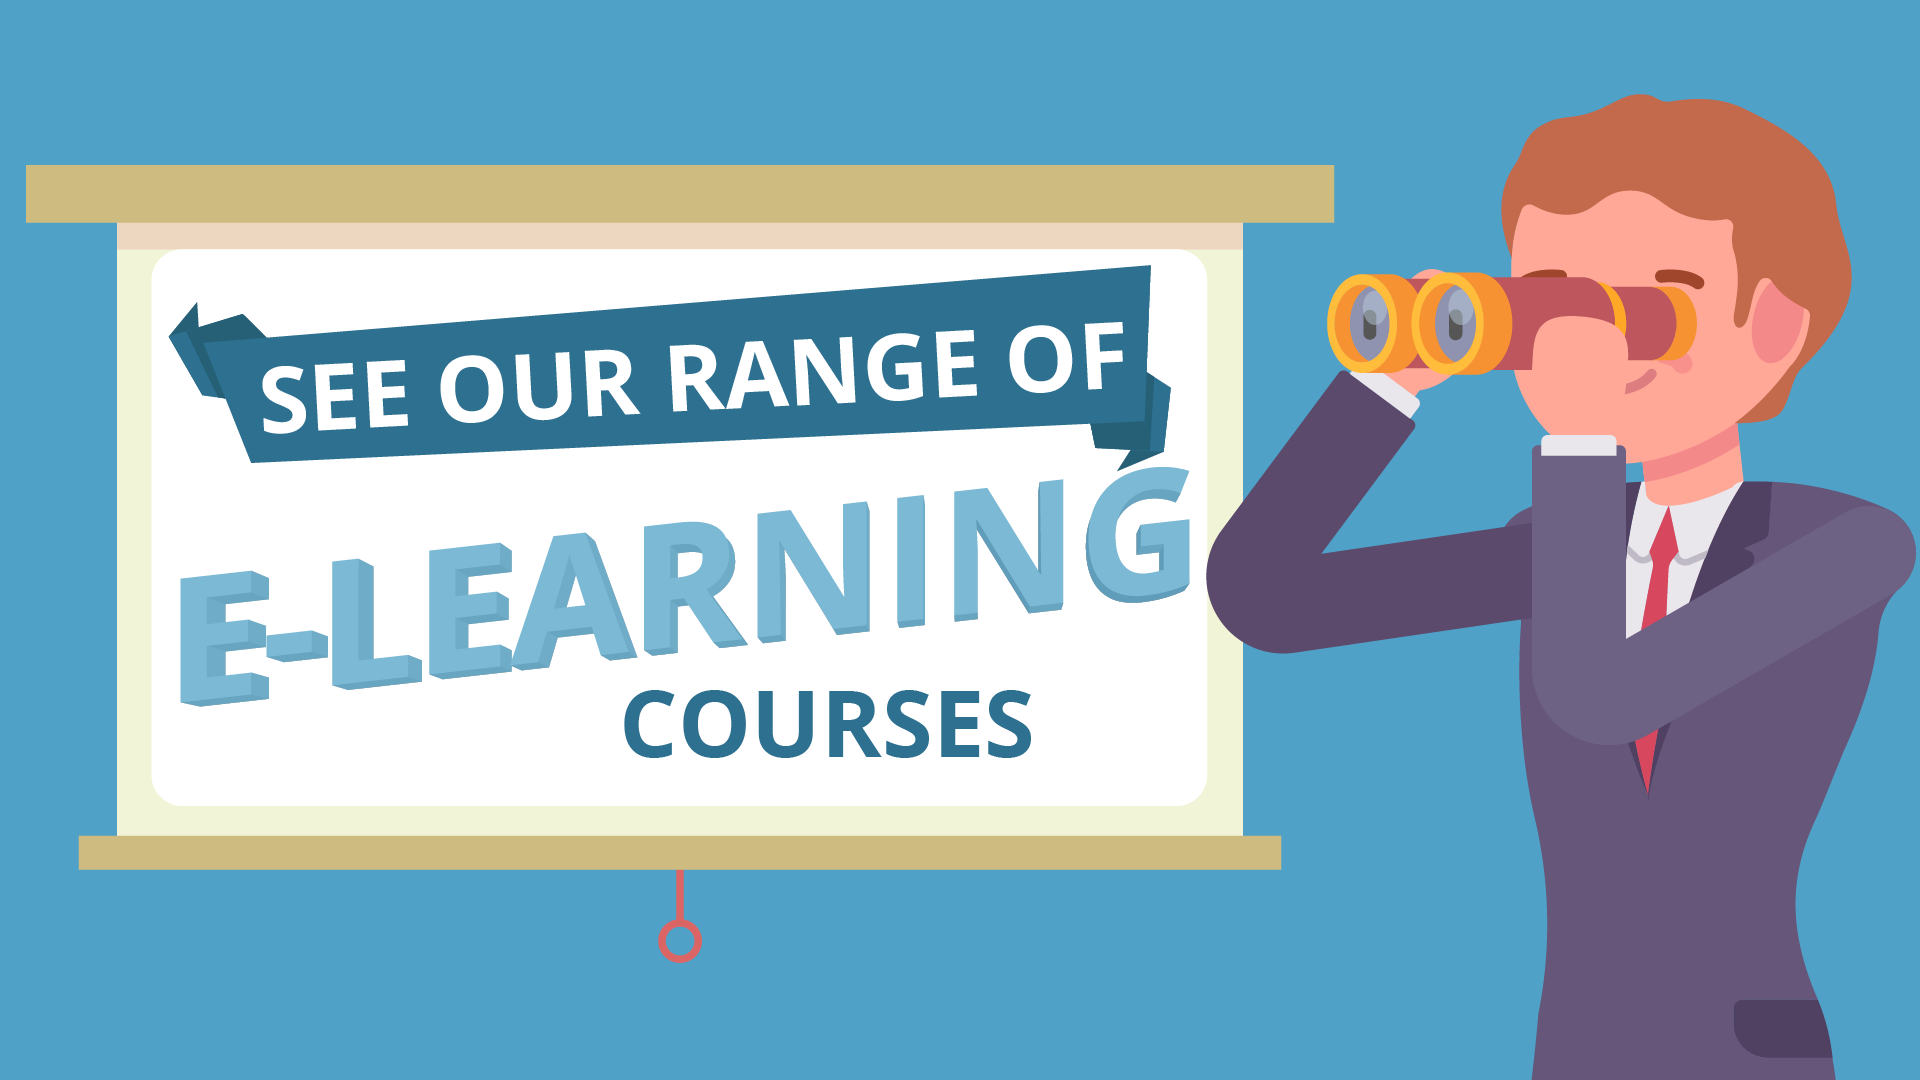 Accredited E-Learning Content